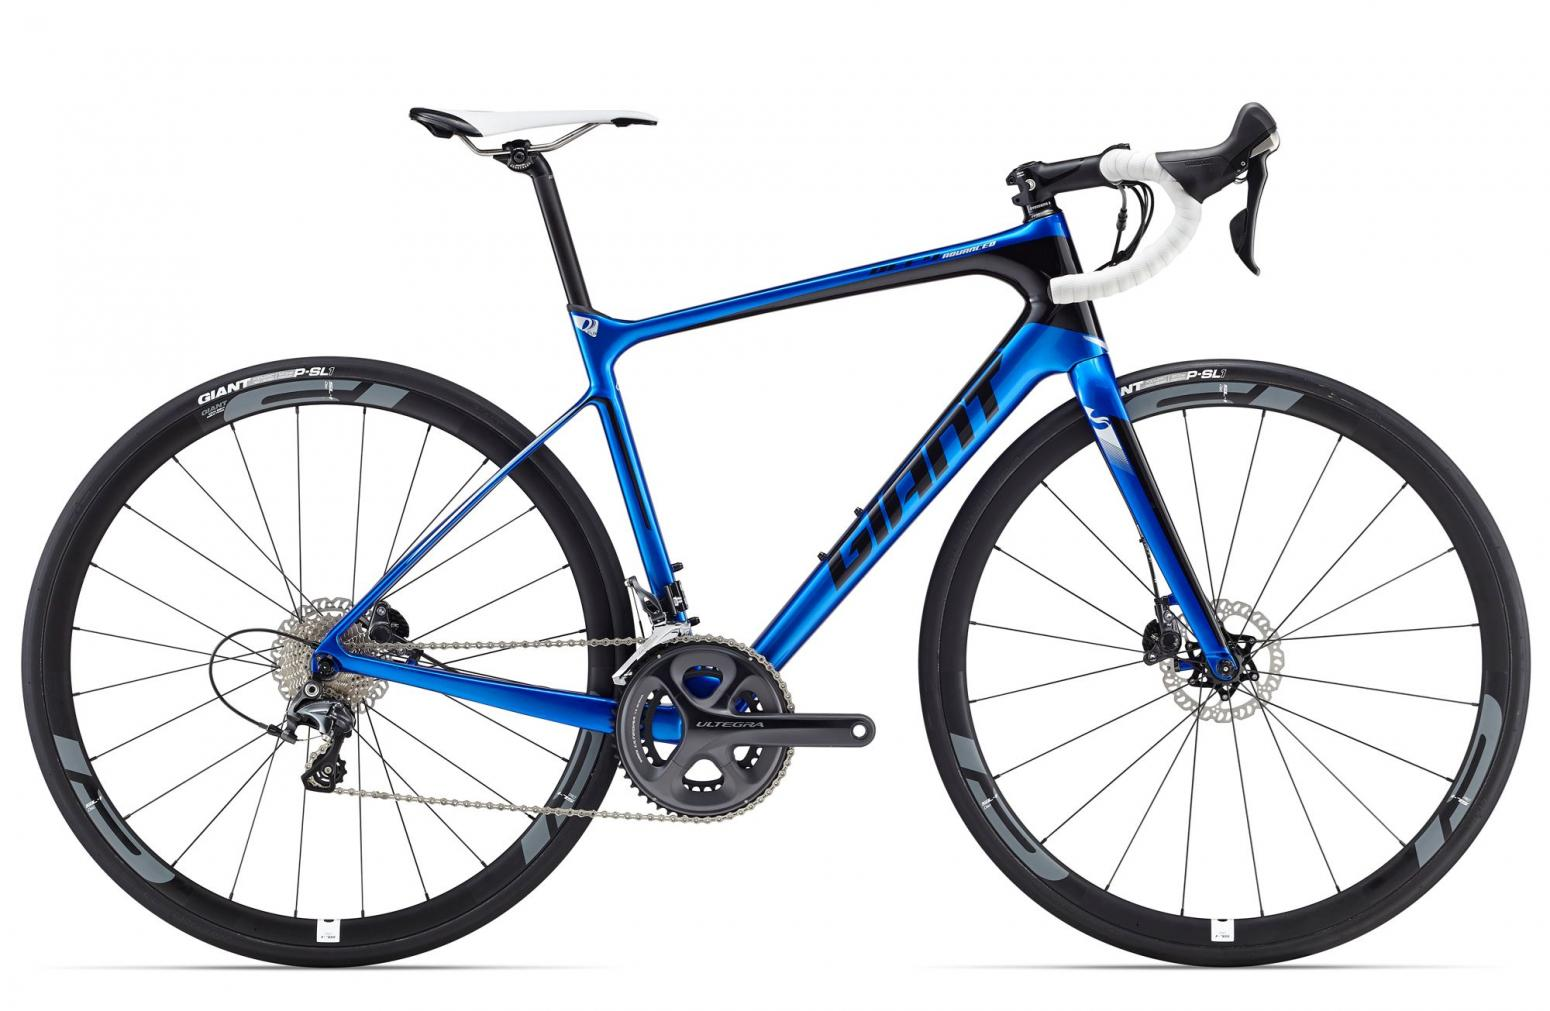 Giant Rennvelo Endurance Defy Advanced Pro 2 2016